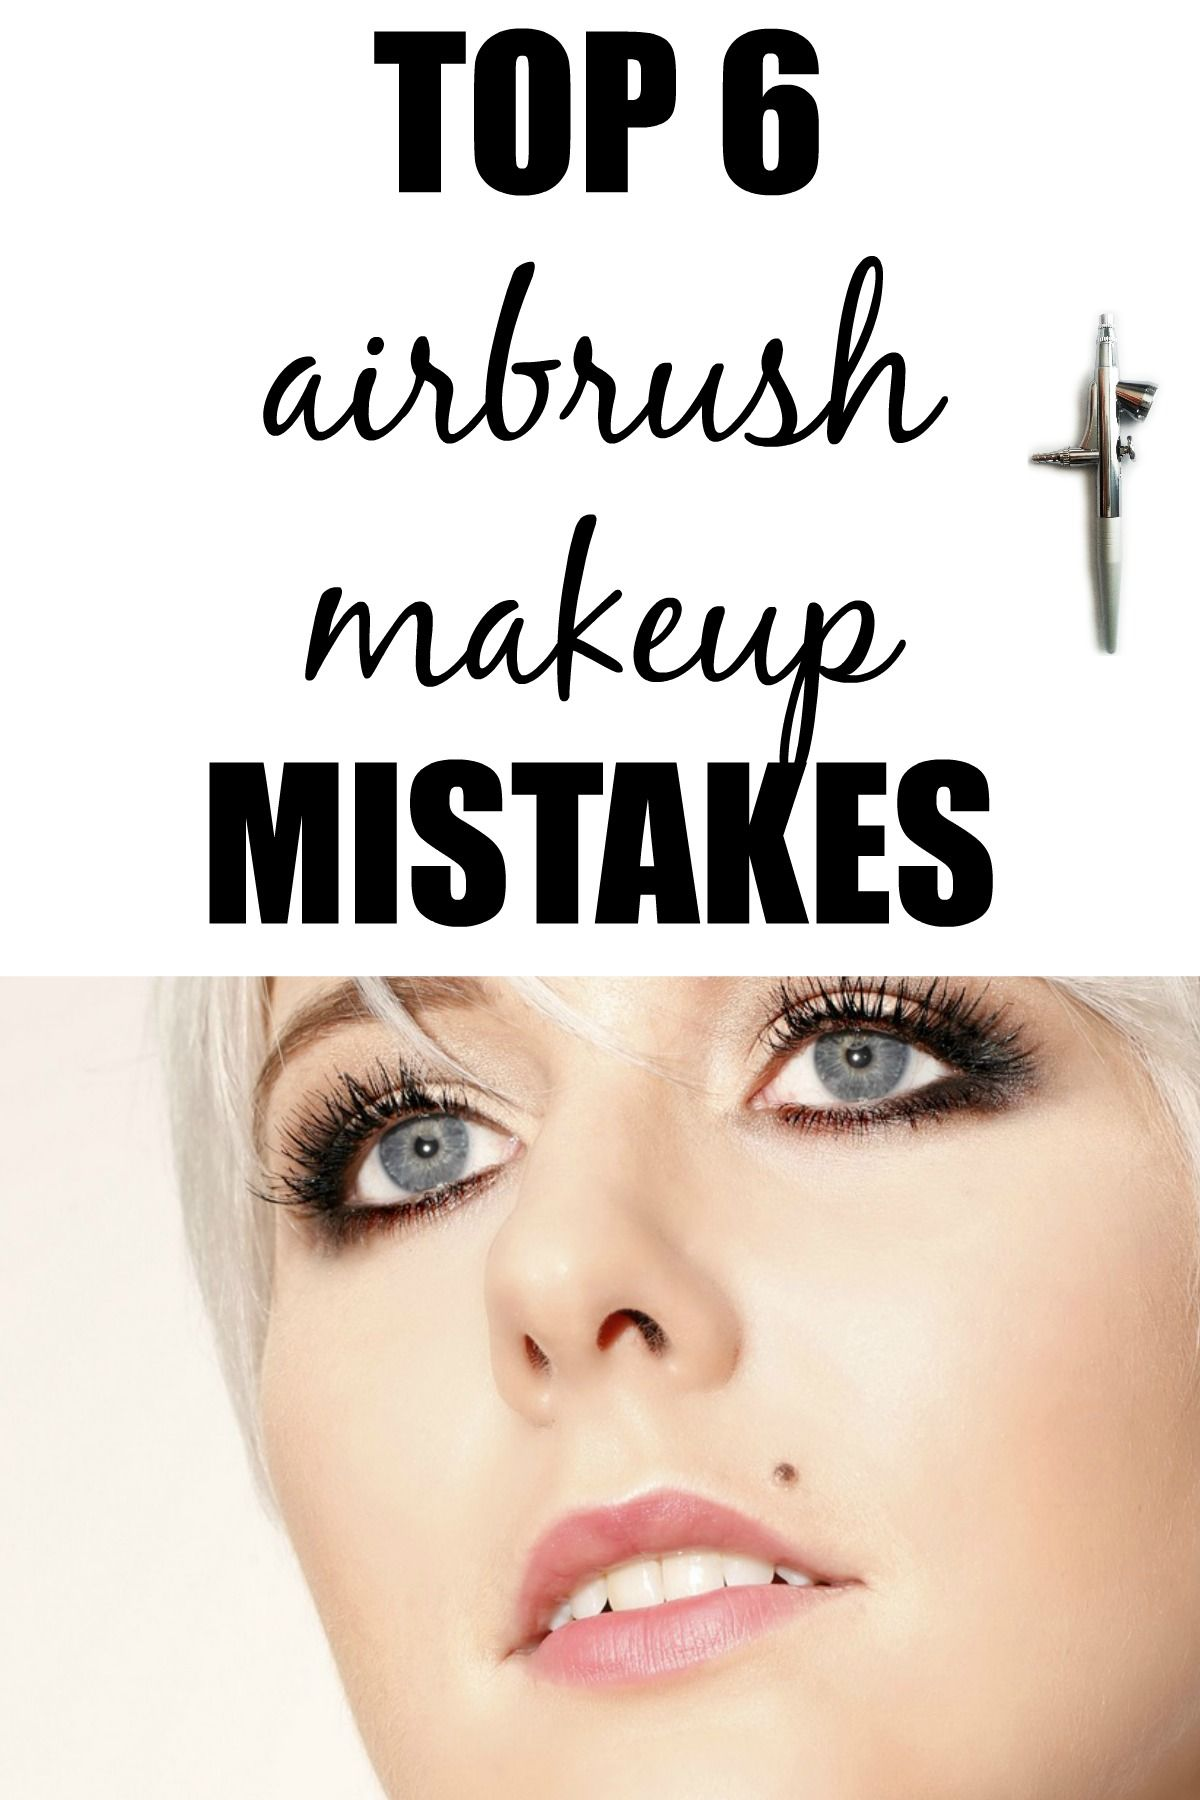 Top 6 Airbrush Makeup Mistakes Makeup mistakes, Wedding